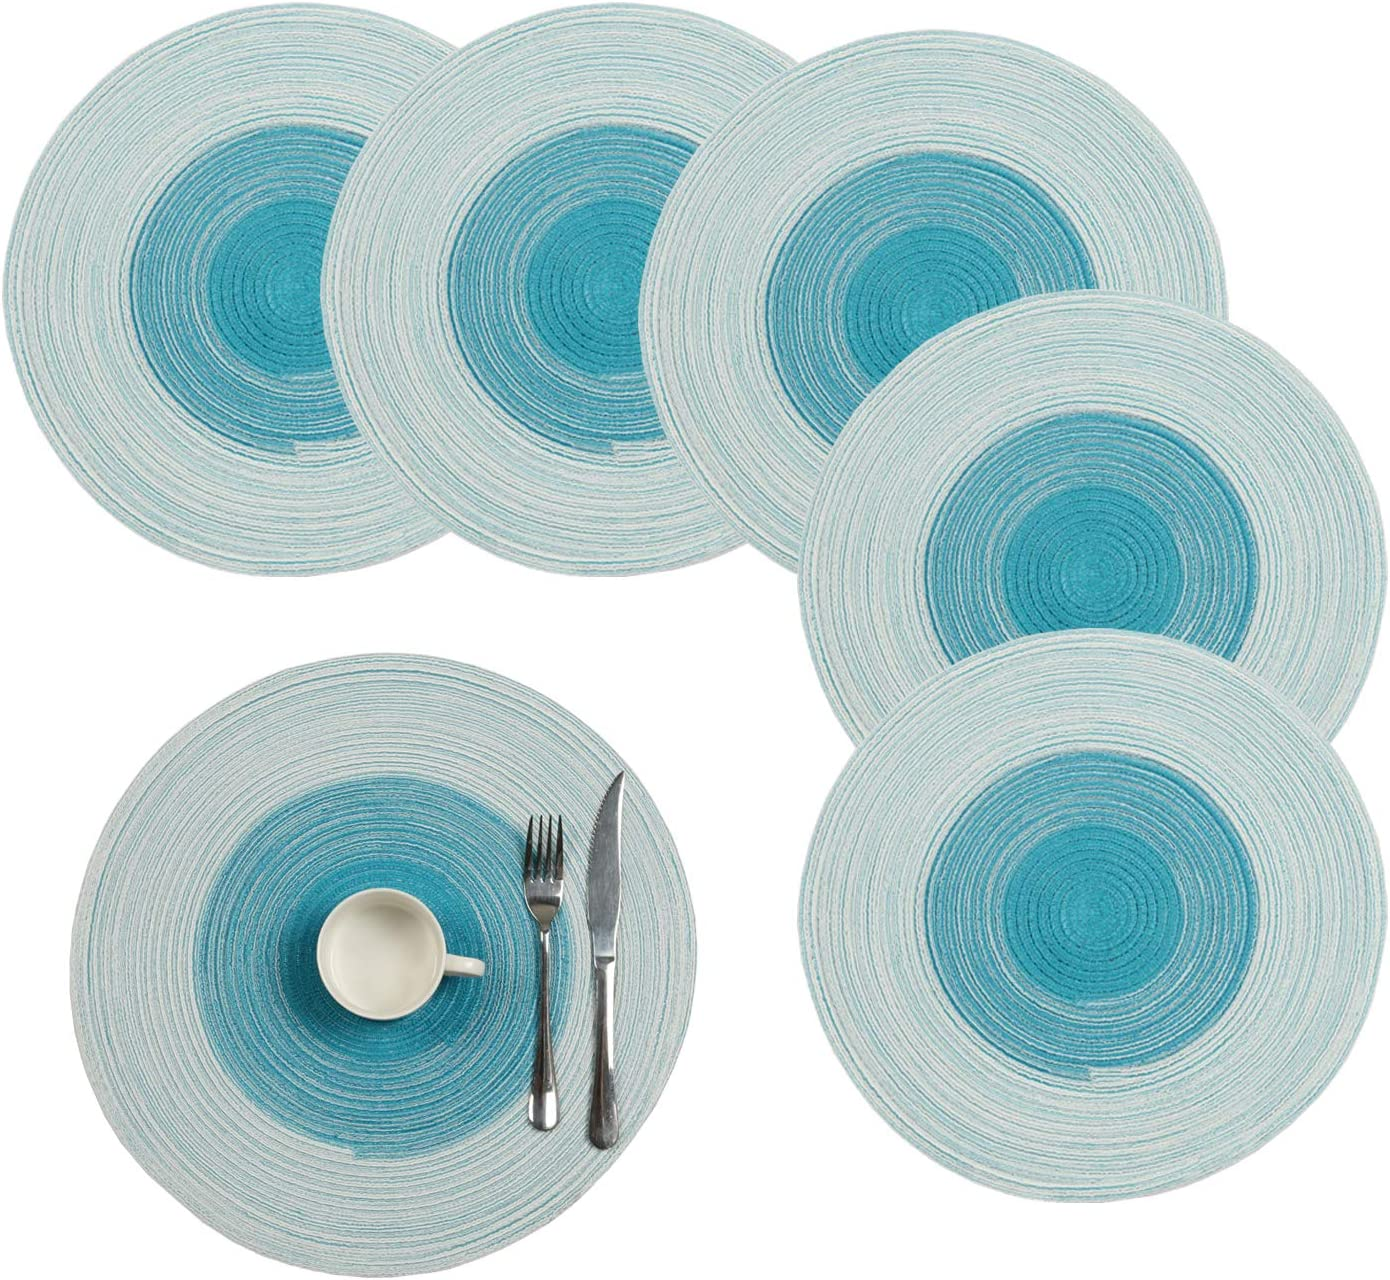 """Pauwer 15"""" Large Round Placemats Set of 6 for Kitchen Table Heat Resistant Non Slip Woven Round Table Placemats Washable (Set of 6, Ombre Blue)"""